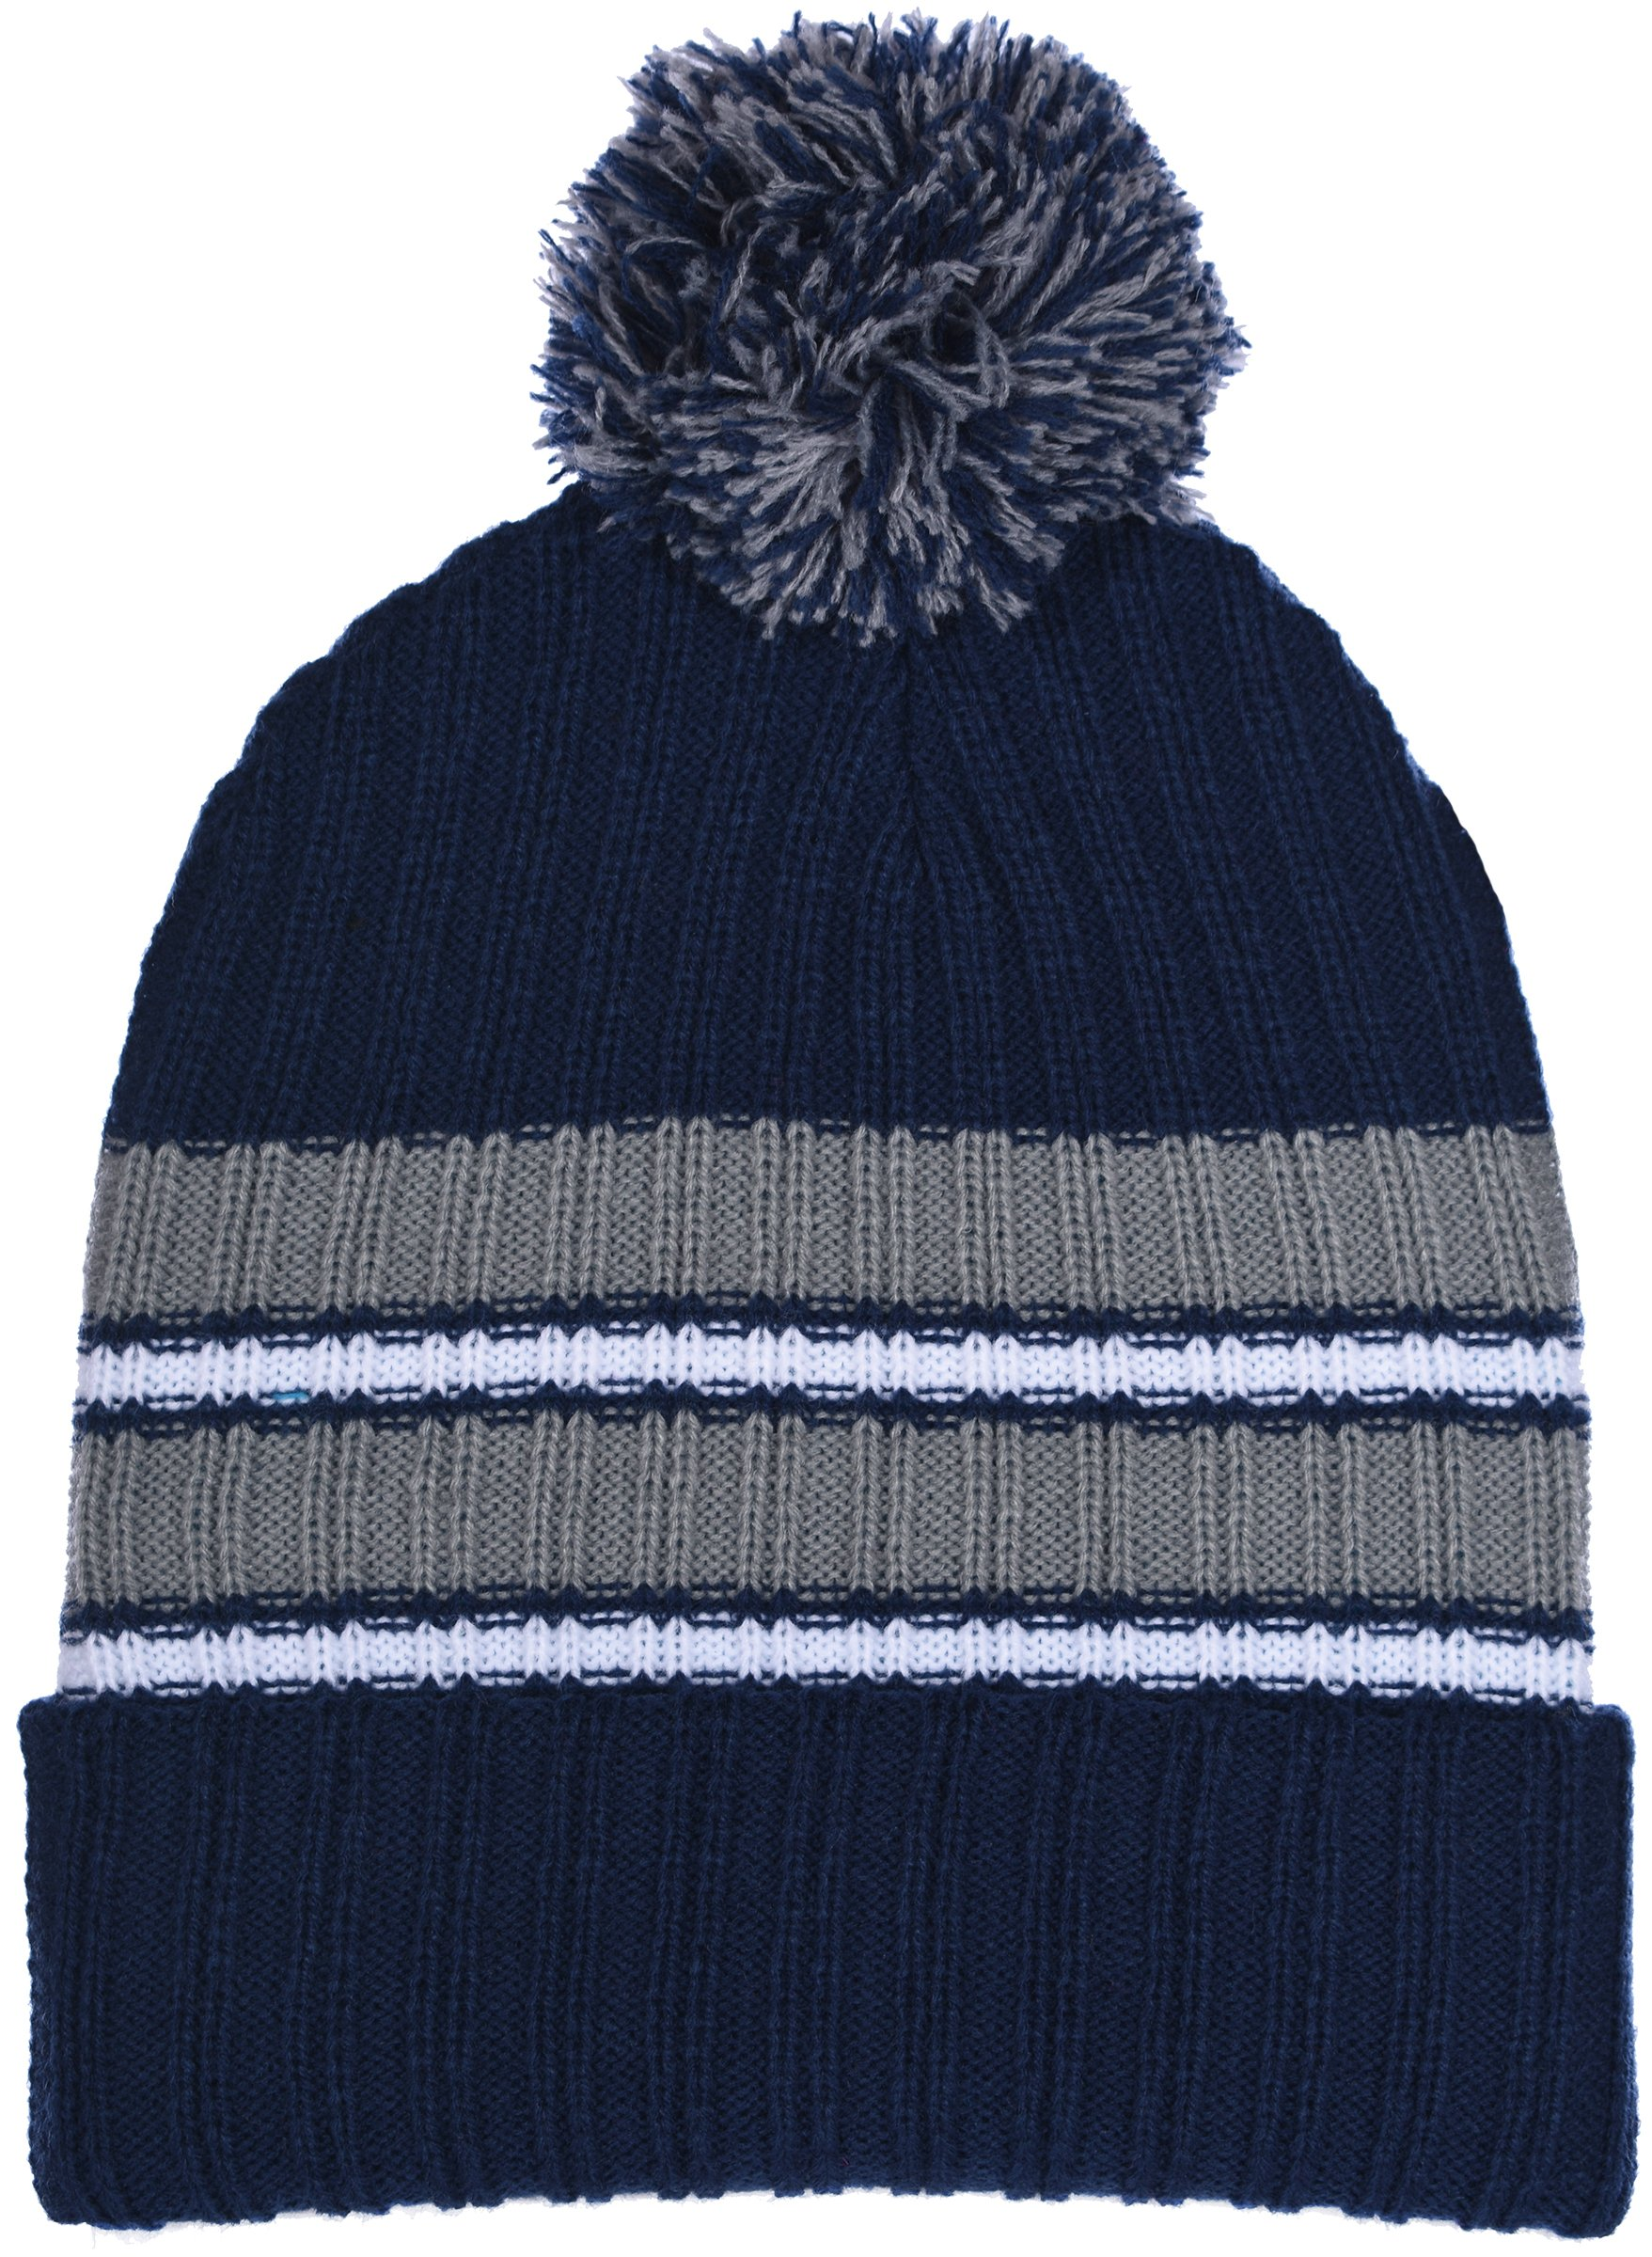 Polar Wear Boy's Cuffed Knit Hat with Pom and Stripes in 6 Color Combinations (Navy Blue - Gray)